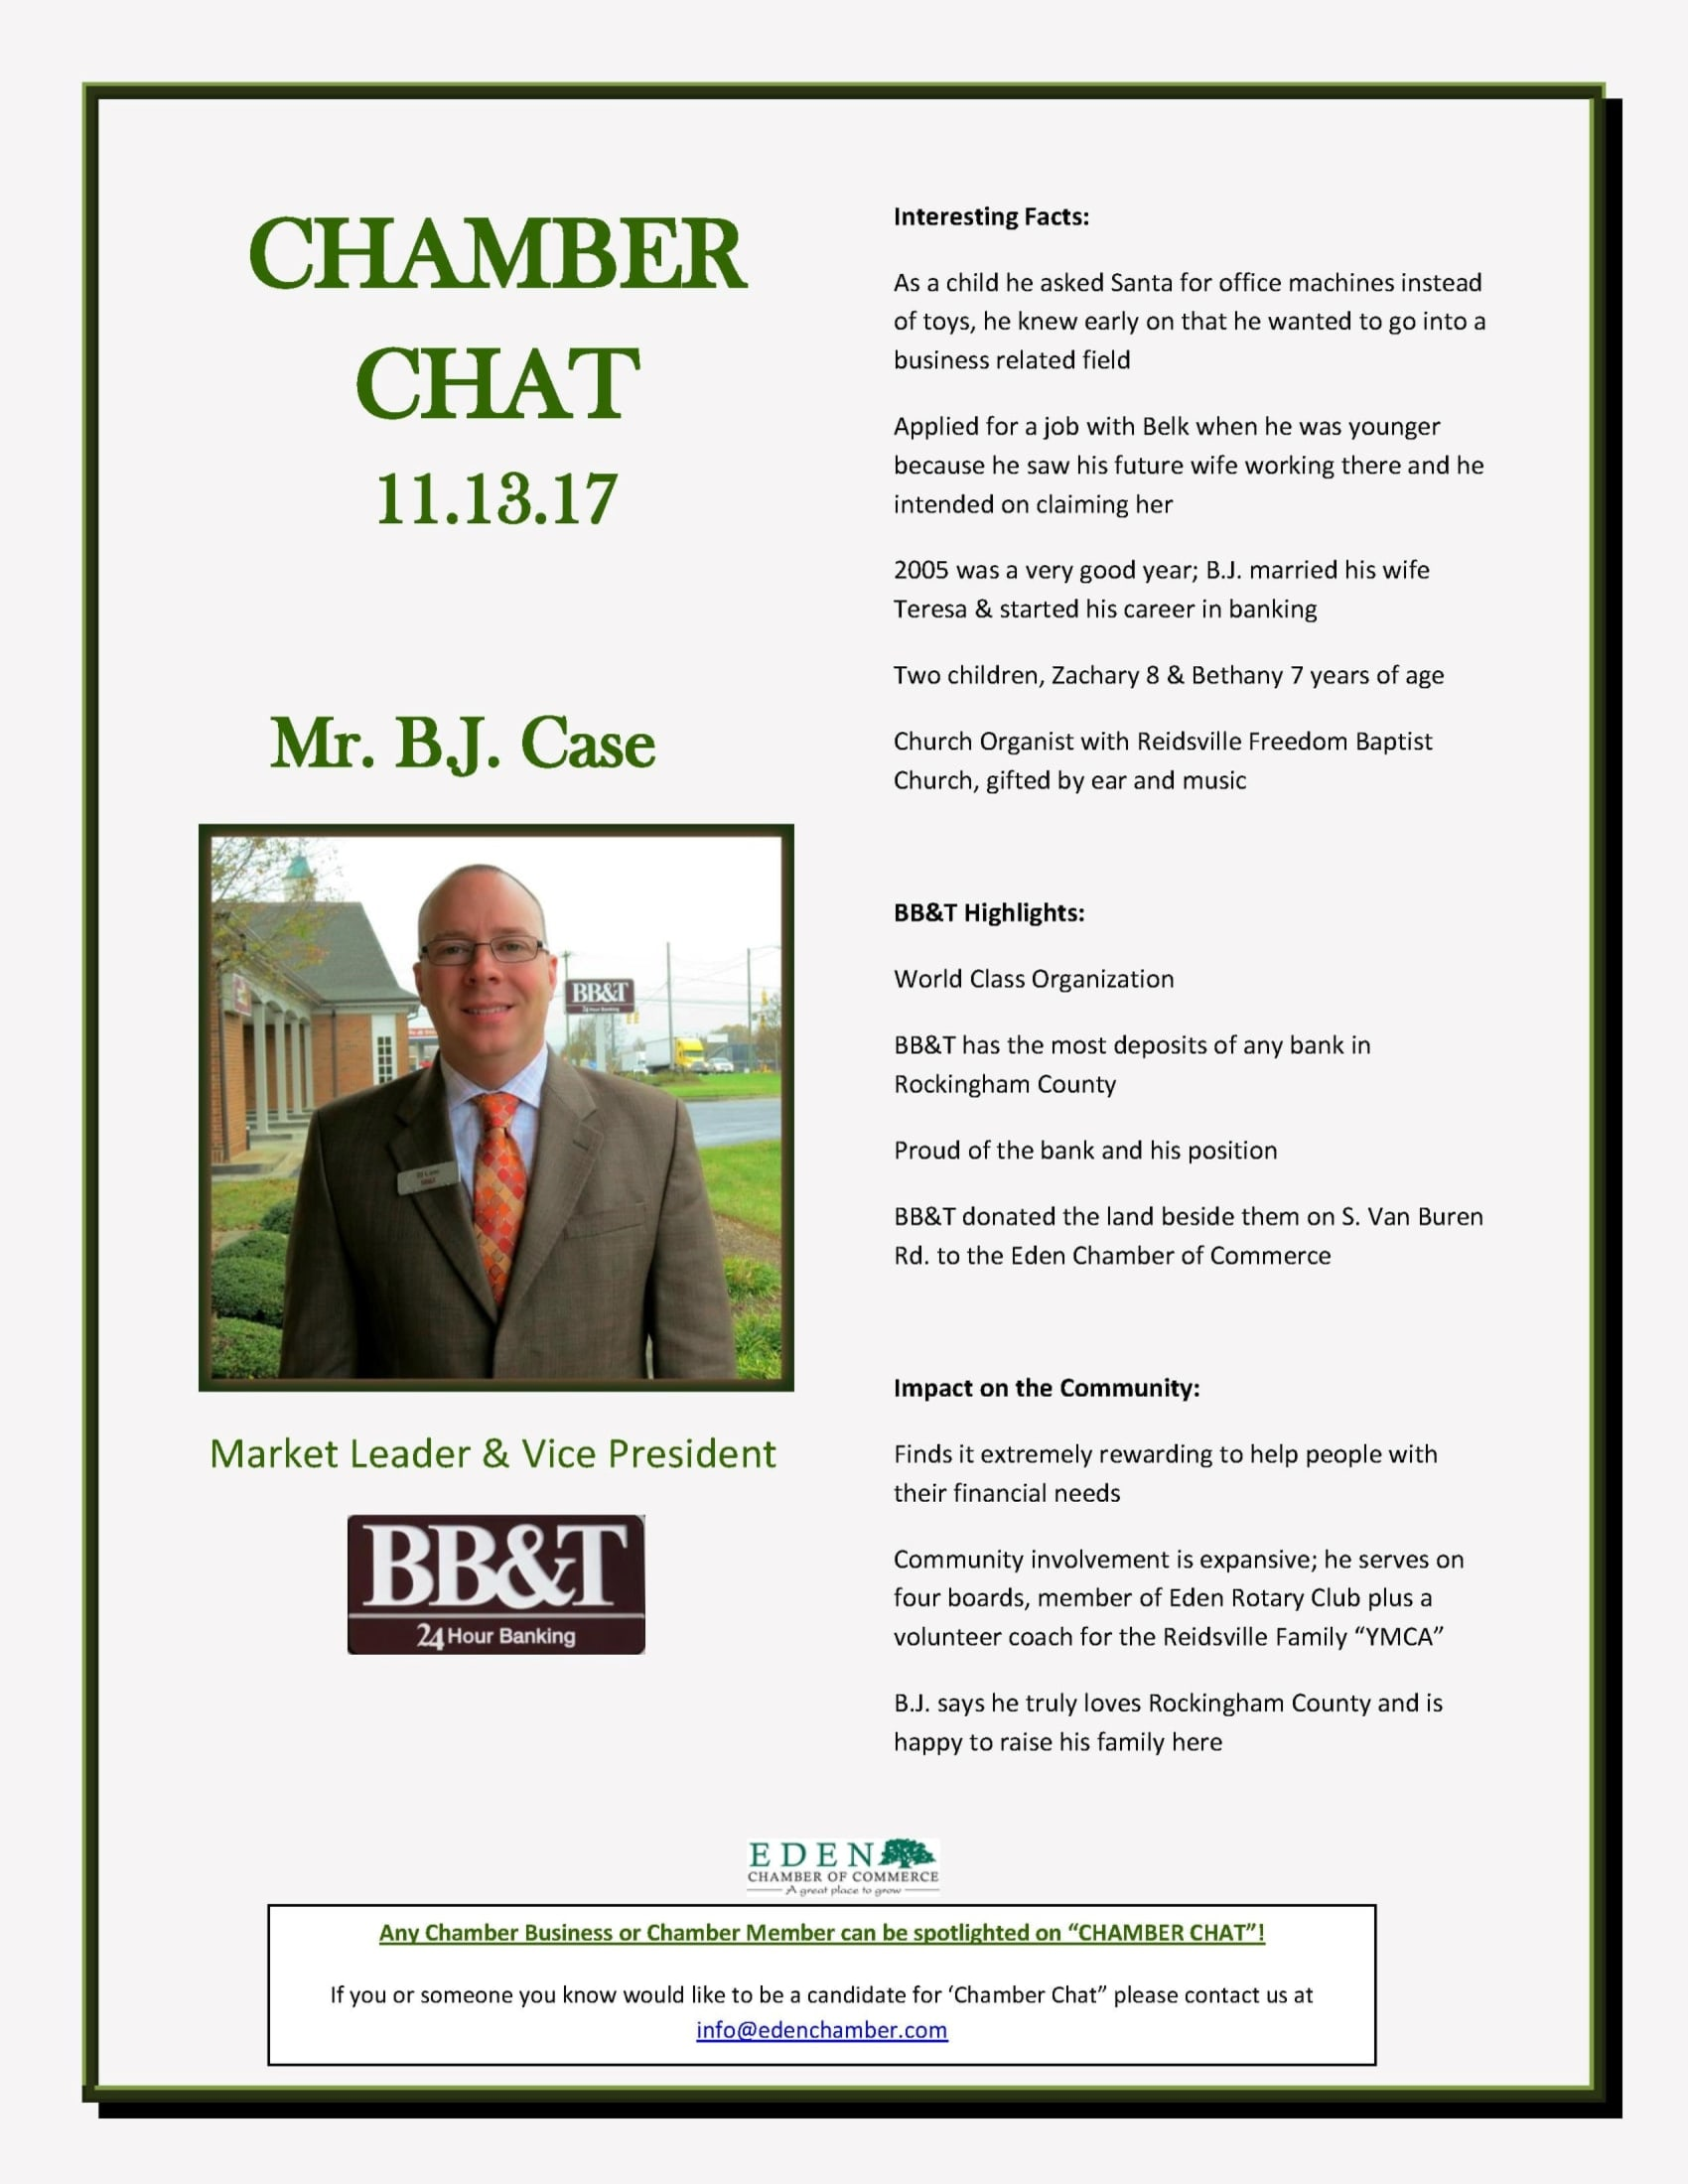 CHAMBER-CHAT-BJ-Case-11.13.17-w1700-w1700.jpg